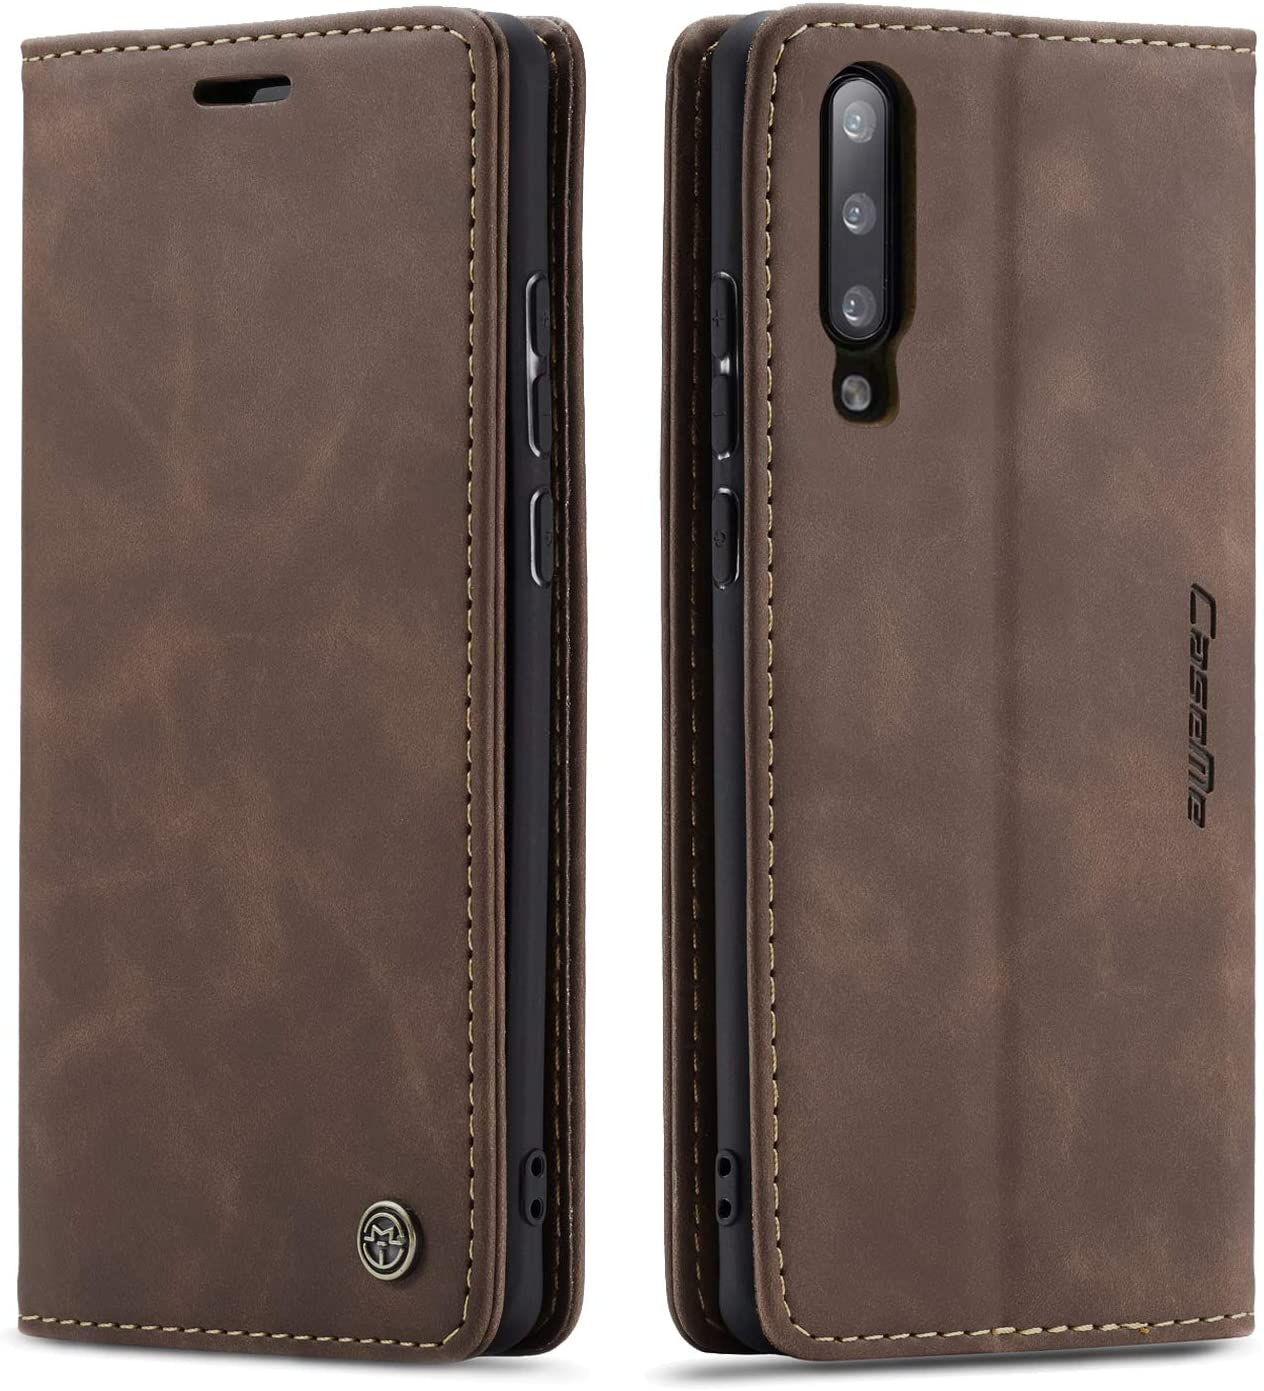 SENSKO Samsung A50 Wallet Case,Magnetic Stand Flip Protective Cover Book Style Leather Flip Cover Durable Shockproof Protective Case for Samsung A50(Coffee)